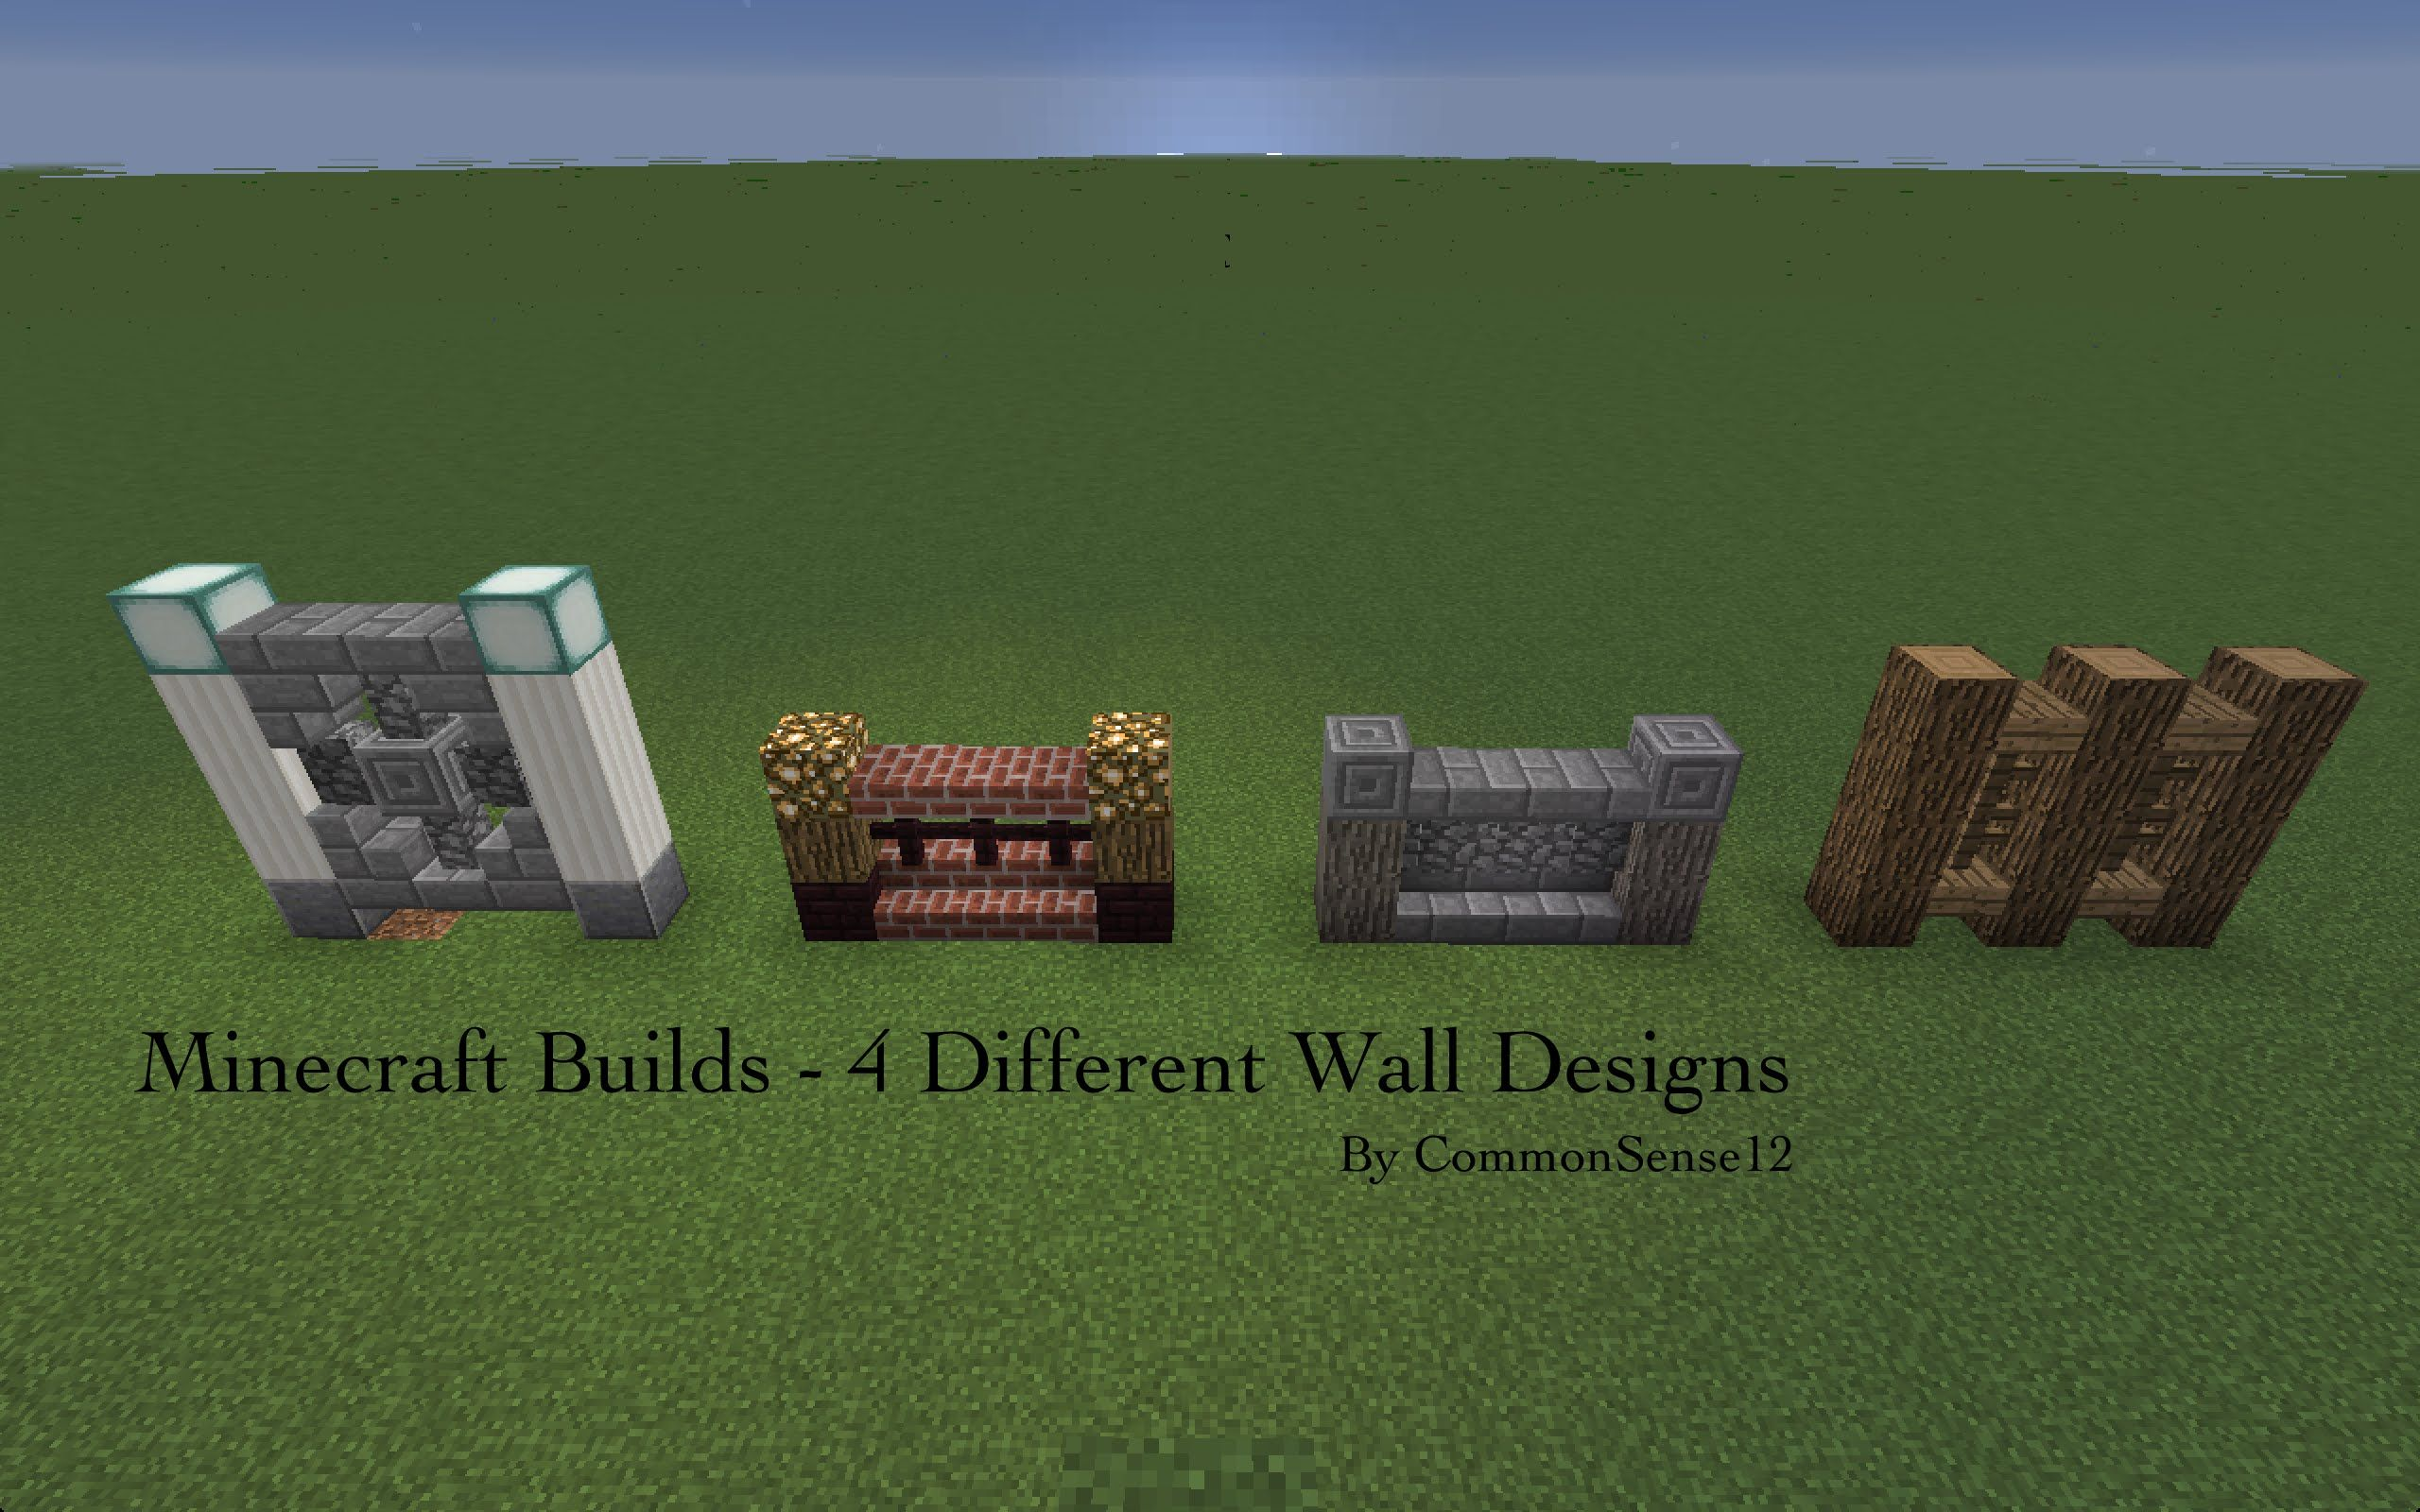 Pin By Beatrice Rudiger On Minecraft 3 3 3 3 3 Pinterest